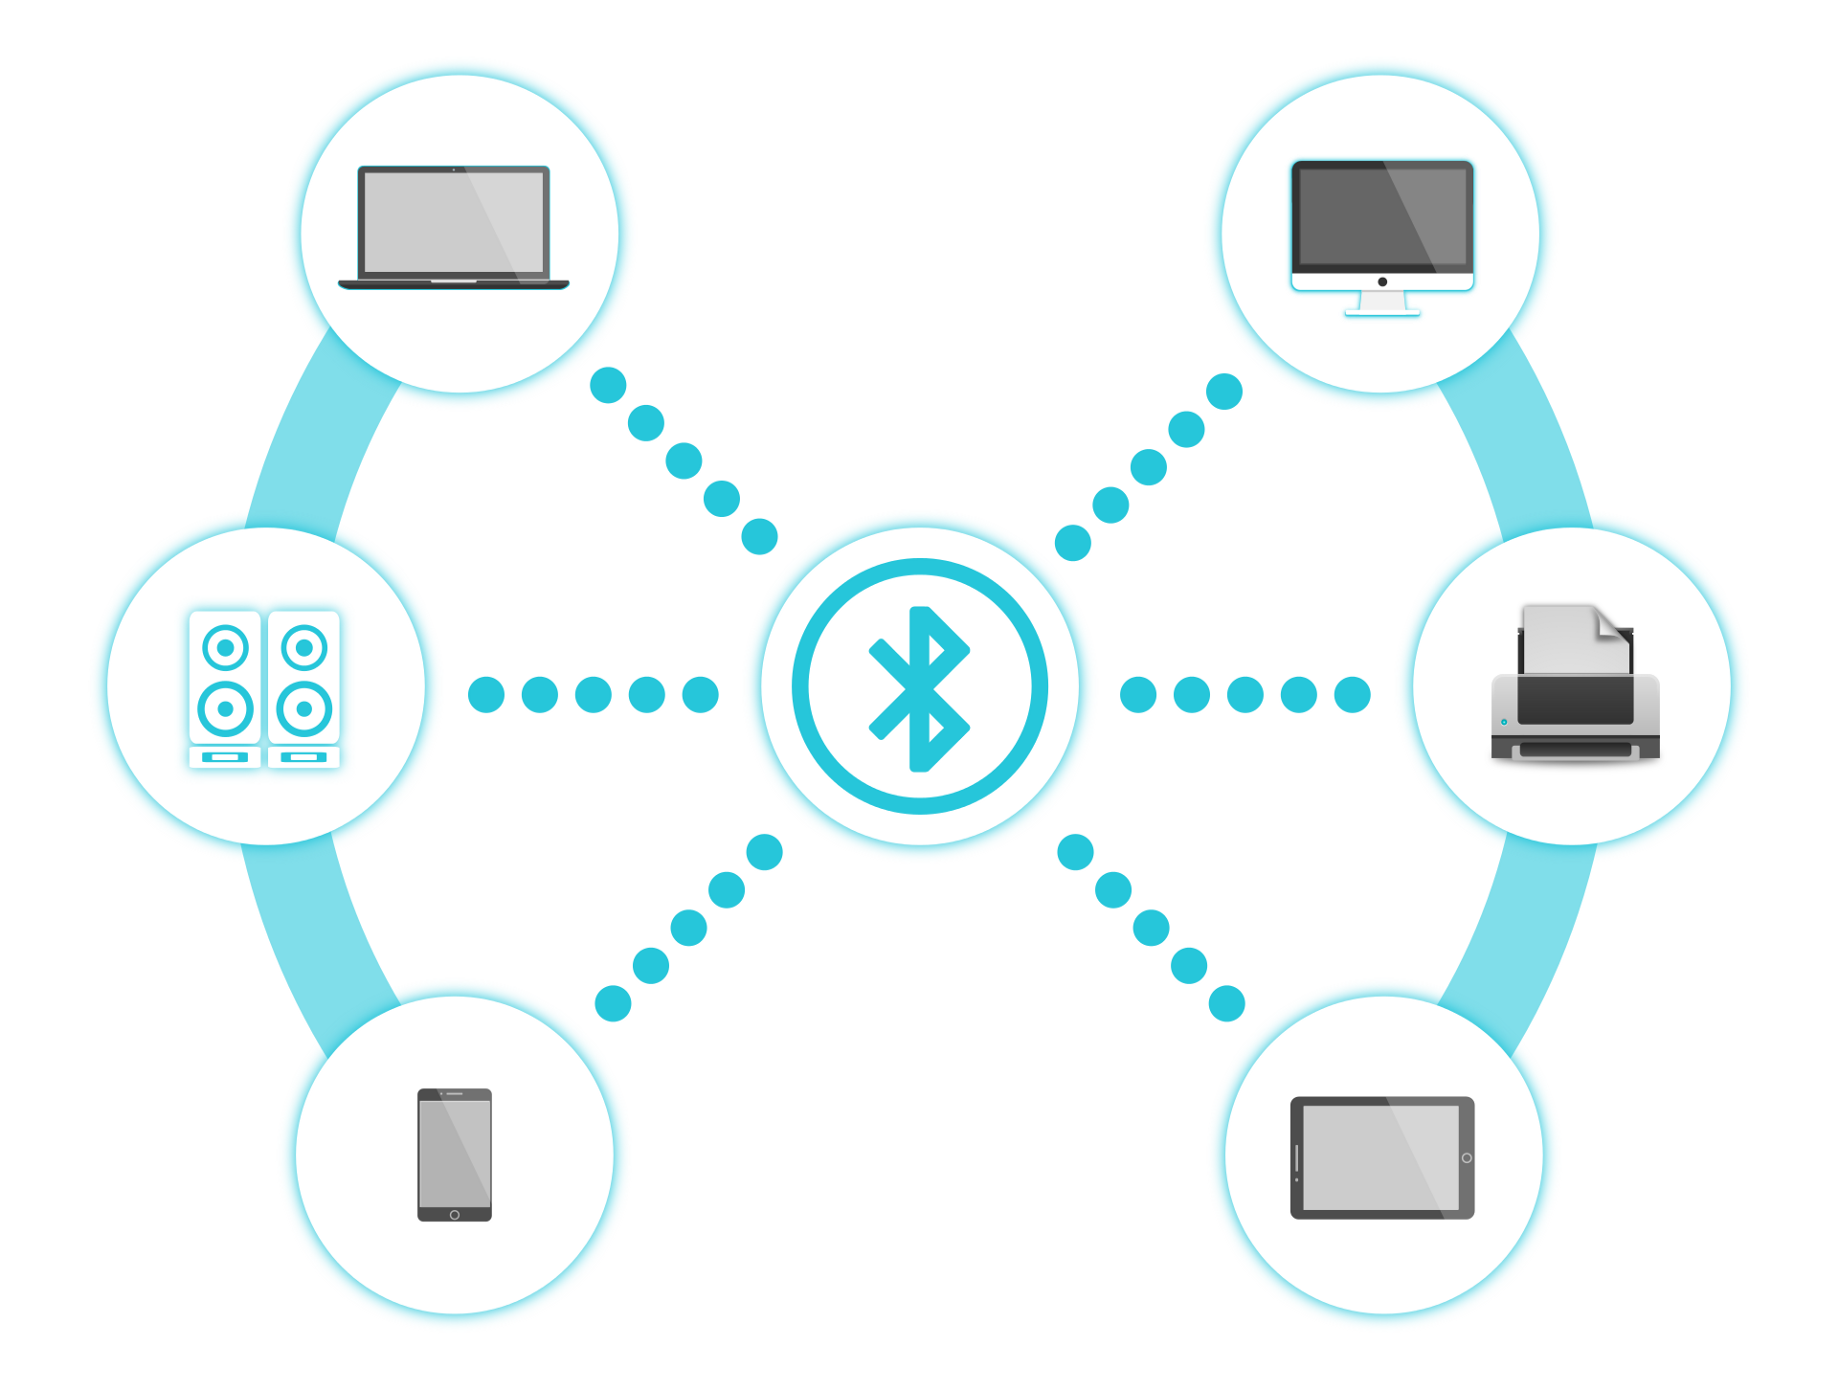 Lessons learned from building a mobile app with Bluetooth Low Energy